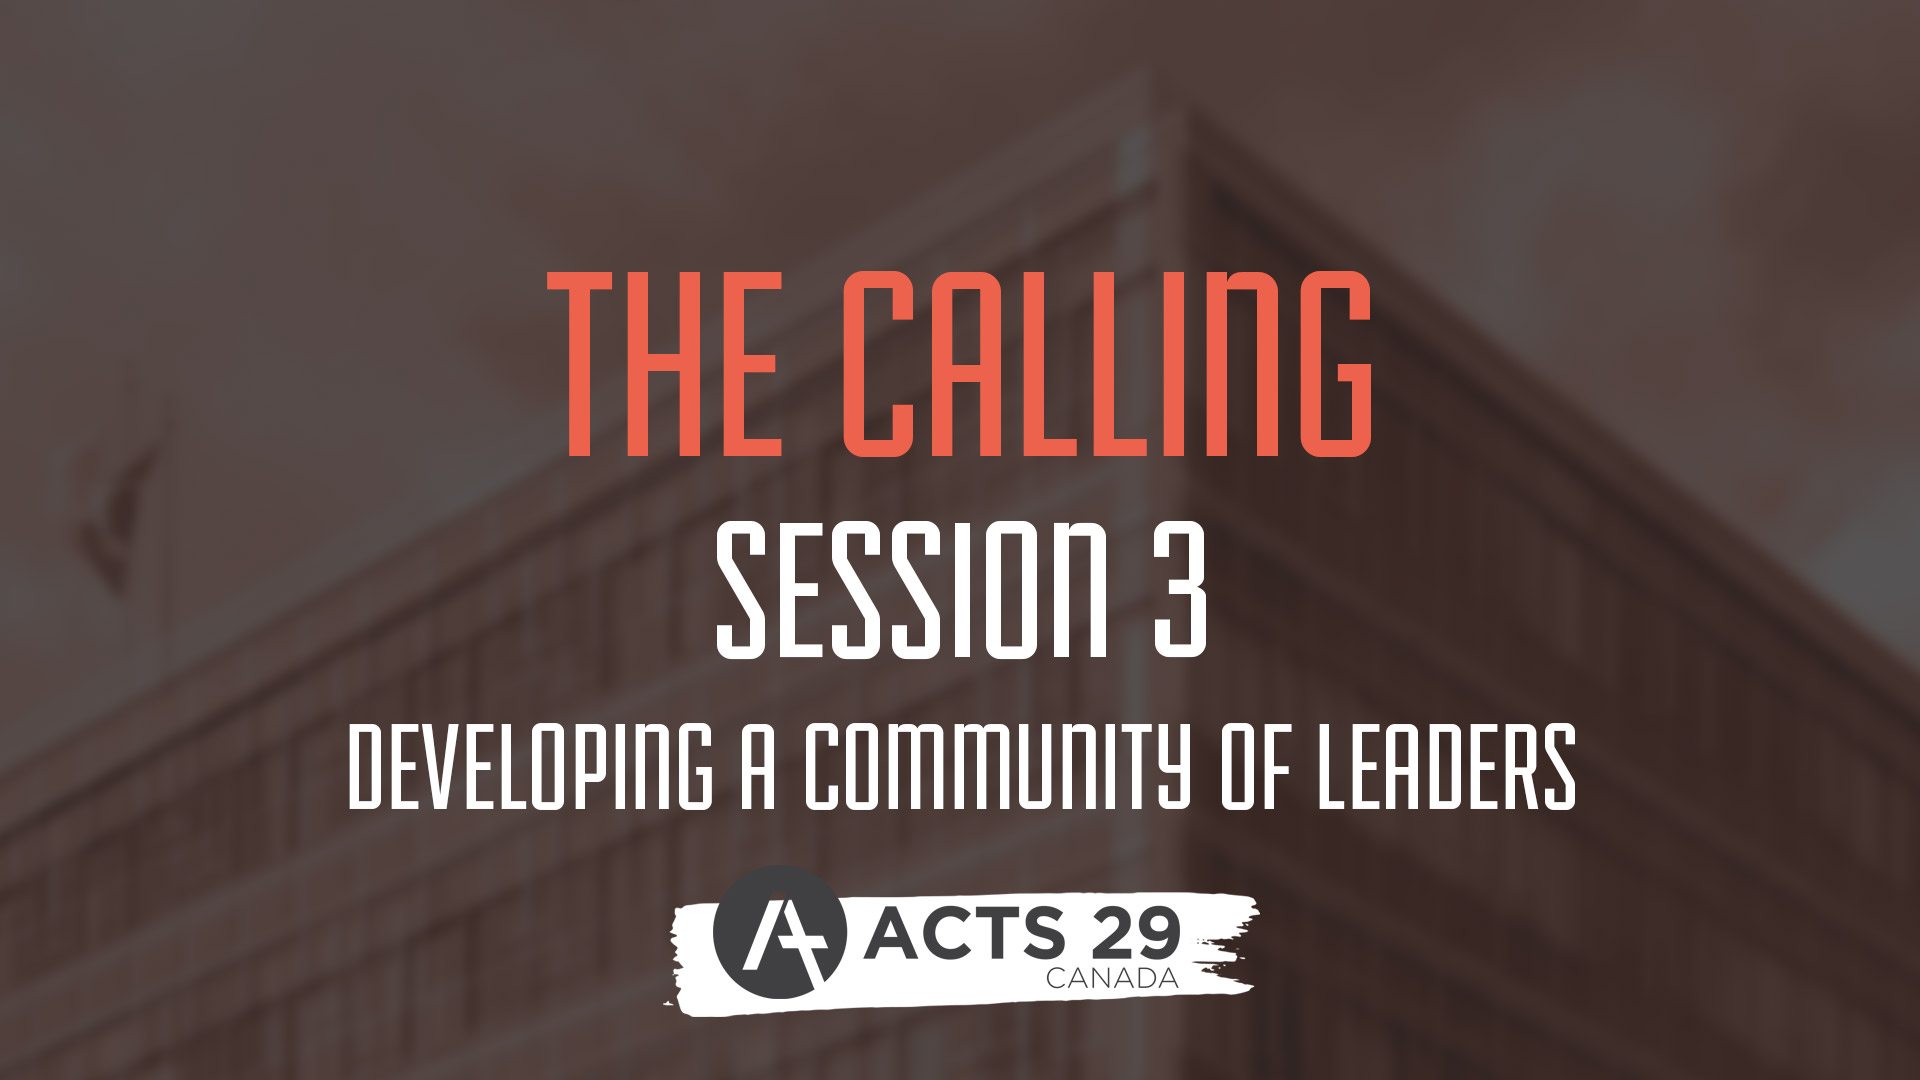 The Calling - Session 3